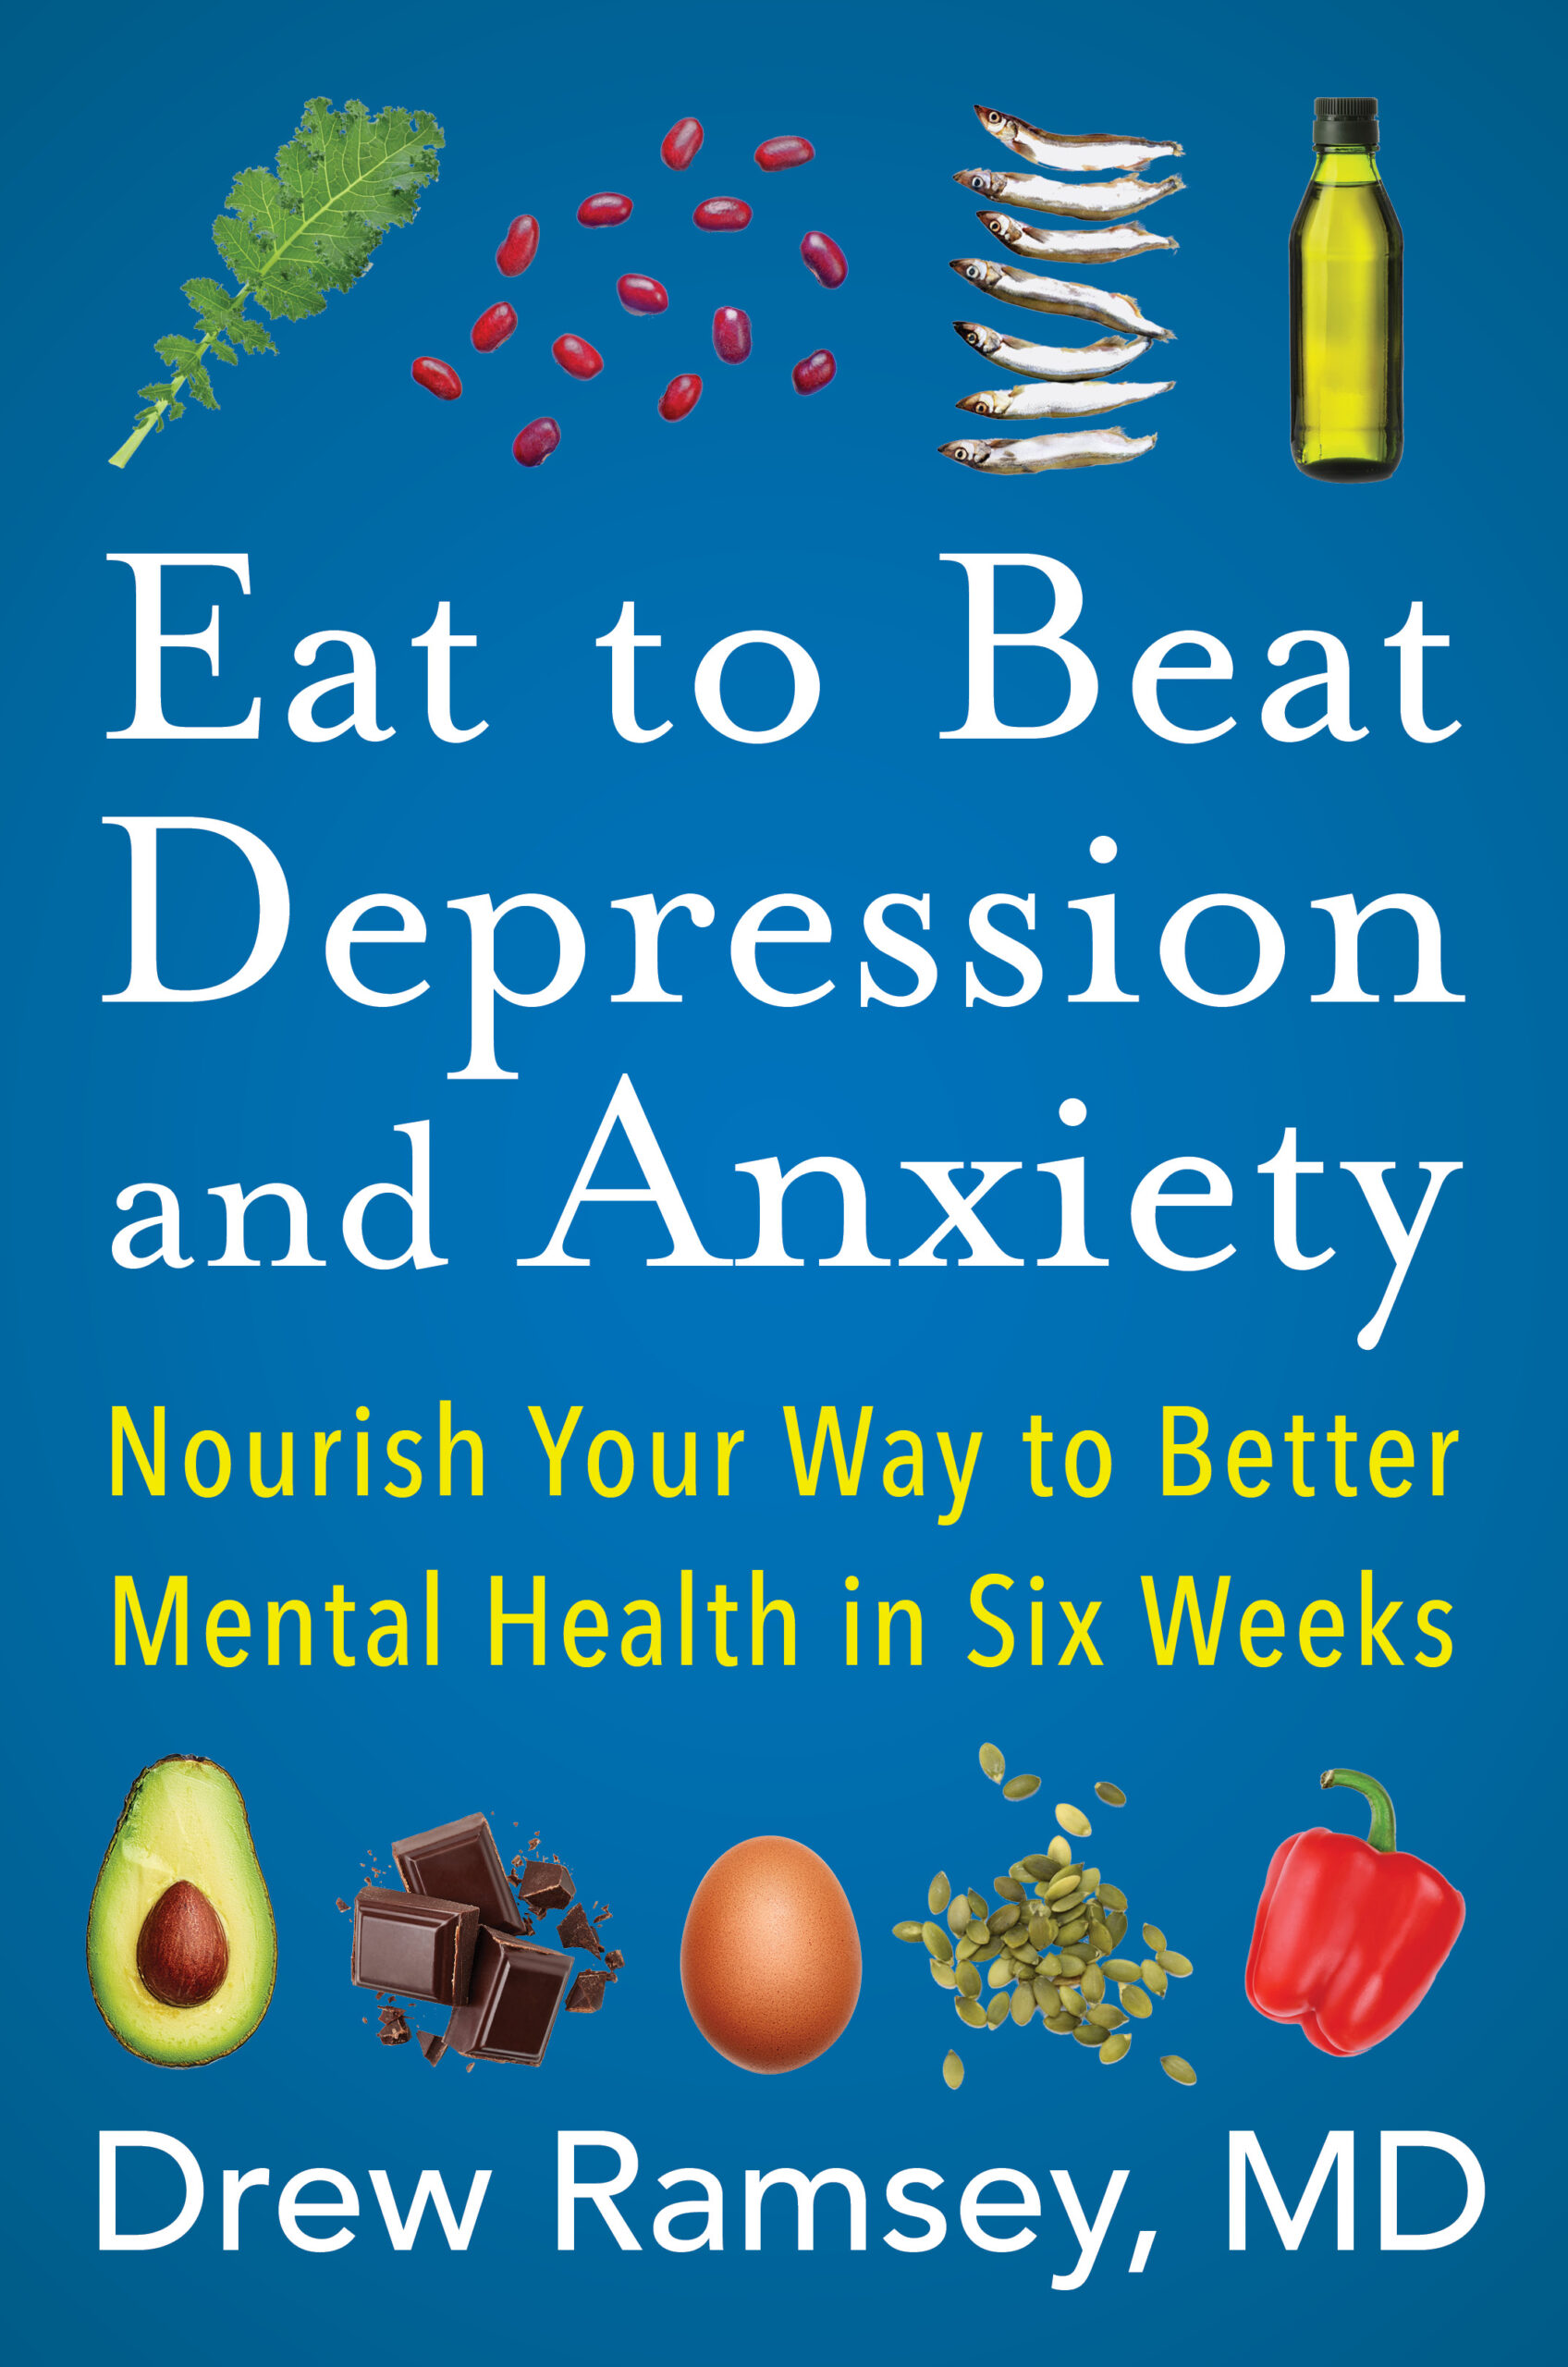 Eat_to_Beat_Depression_and_Anxiety_hc_c